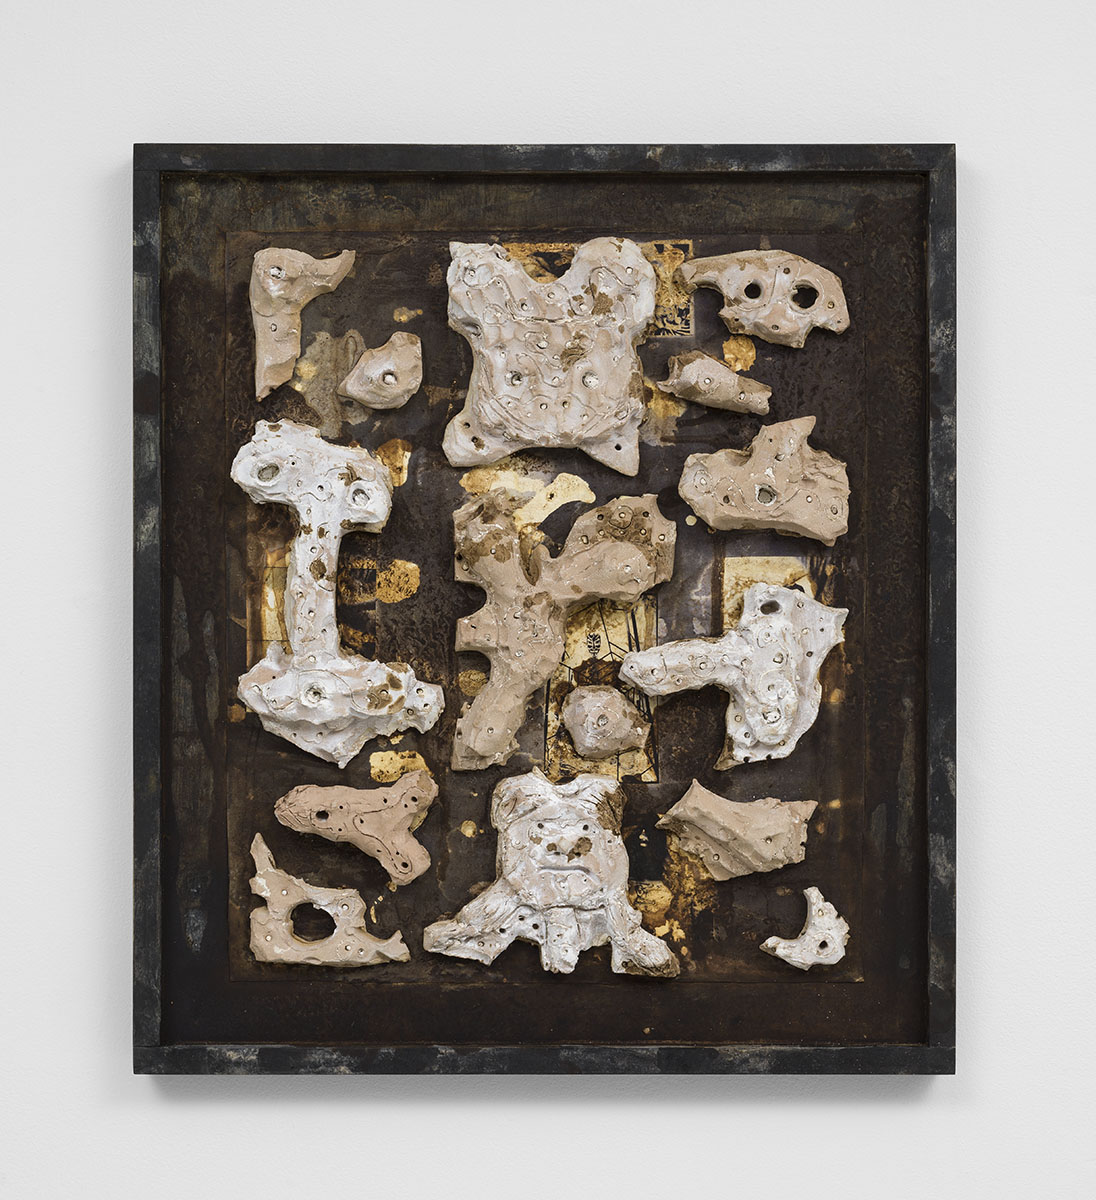 Richard Hawkins - Robot Engine Parts 2, 2015, unglazed ceramic and tar in artist's frame, 25 ¾ x 22 ¾ x 2 ¾ inches